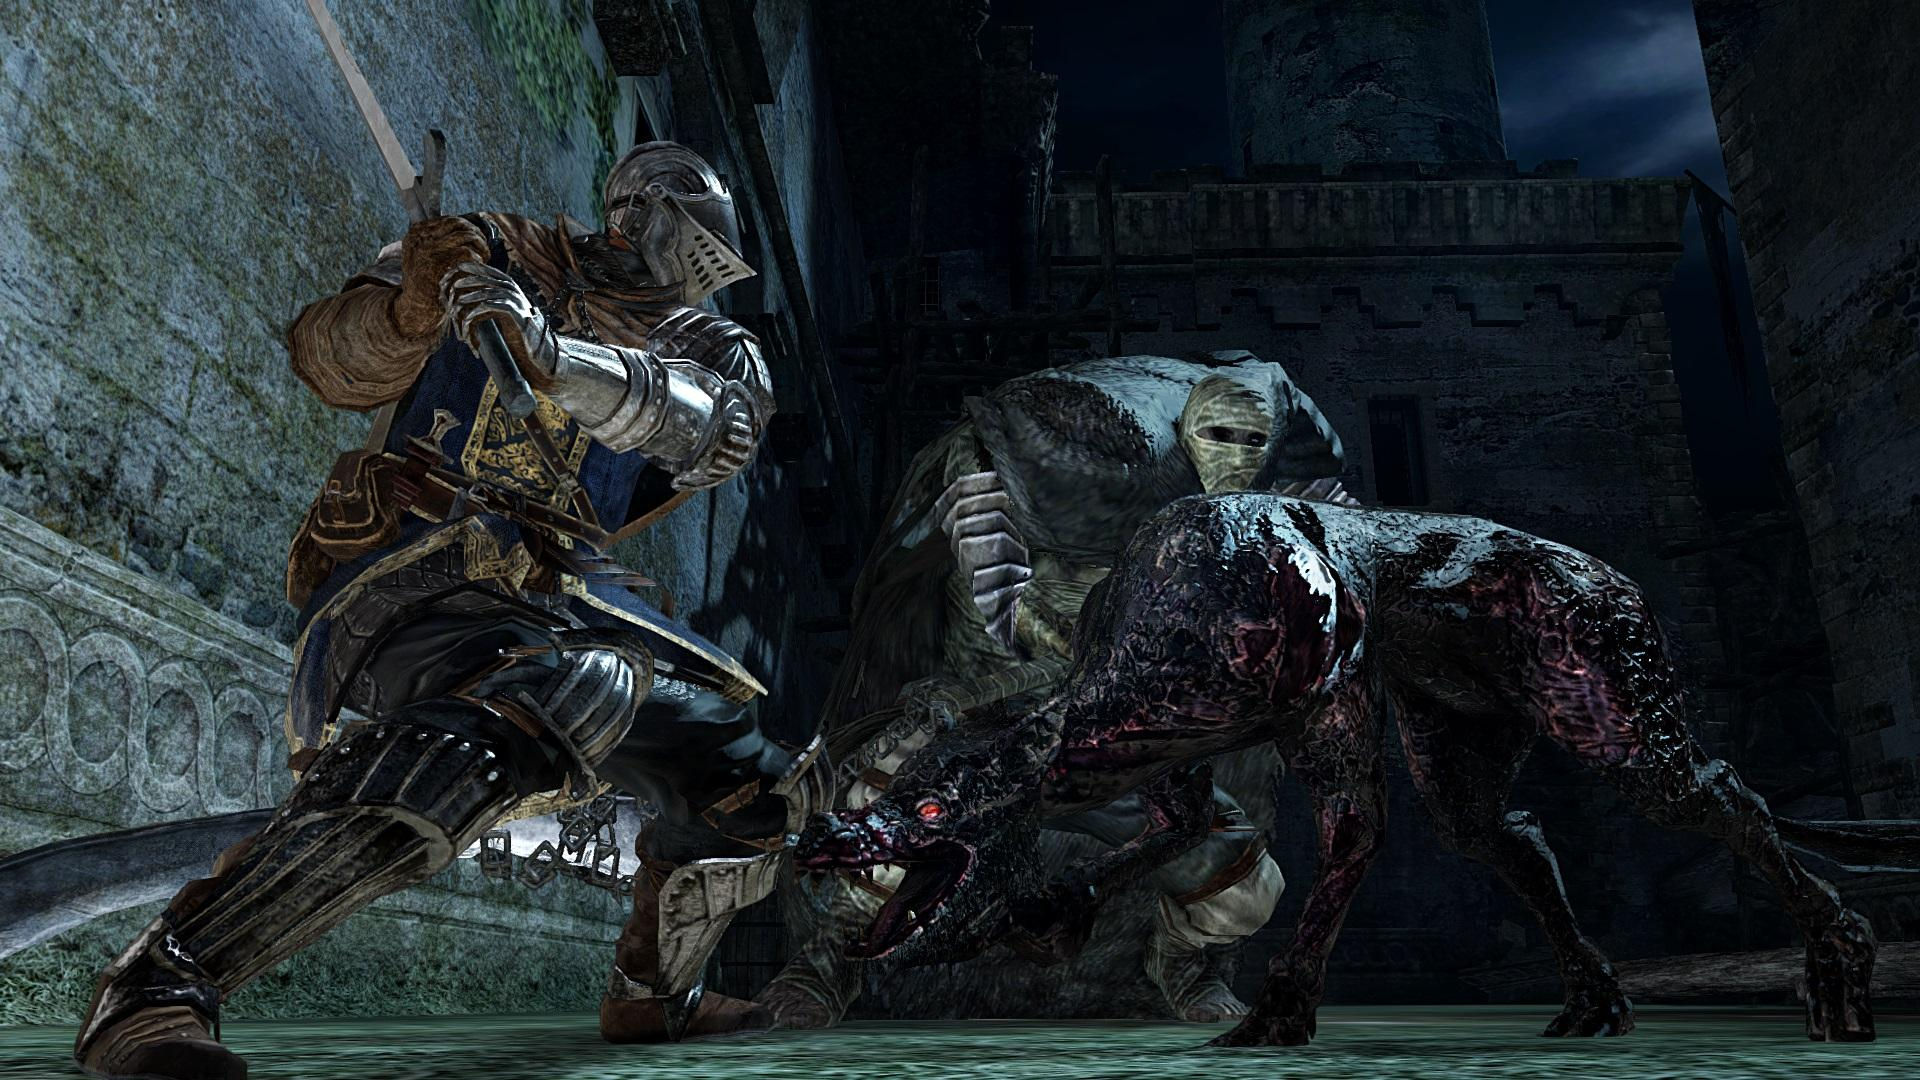 The Trend of 'No Enemy' Game Mods Includes Dark Souls, Mirror's Edge